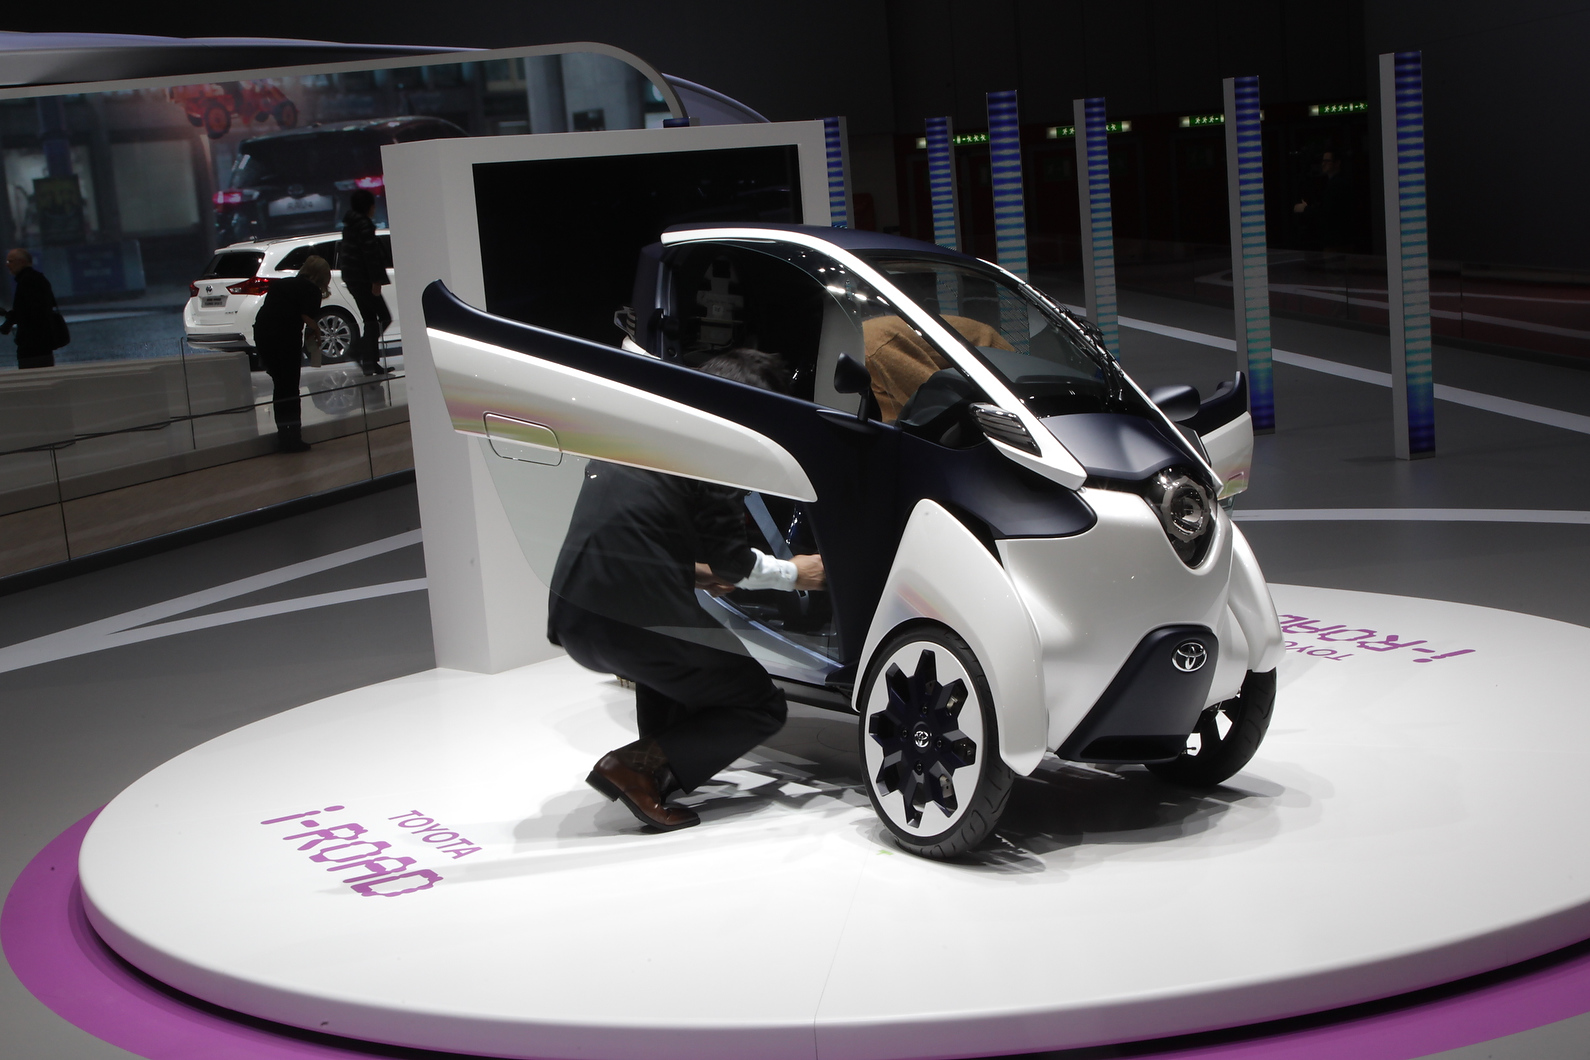 Toyota i-Road aimed at commuters and has a 30-mile range Image 42 of 89